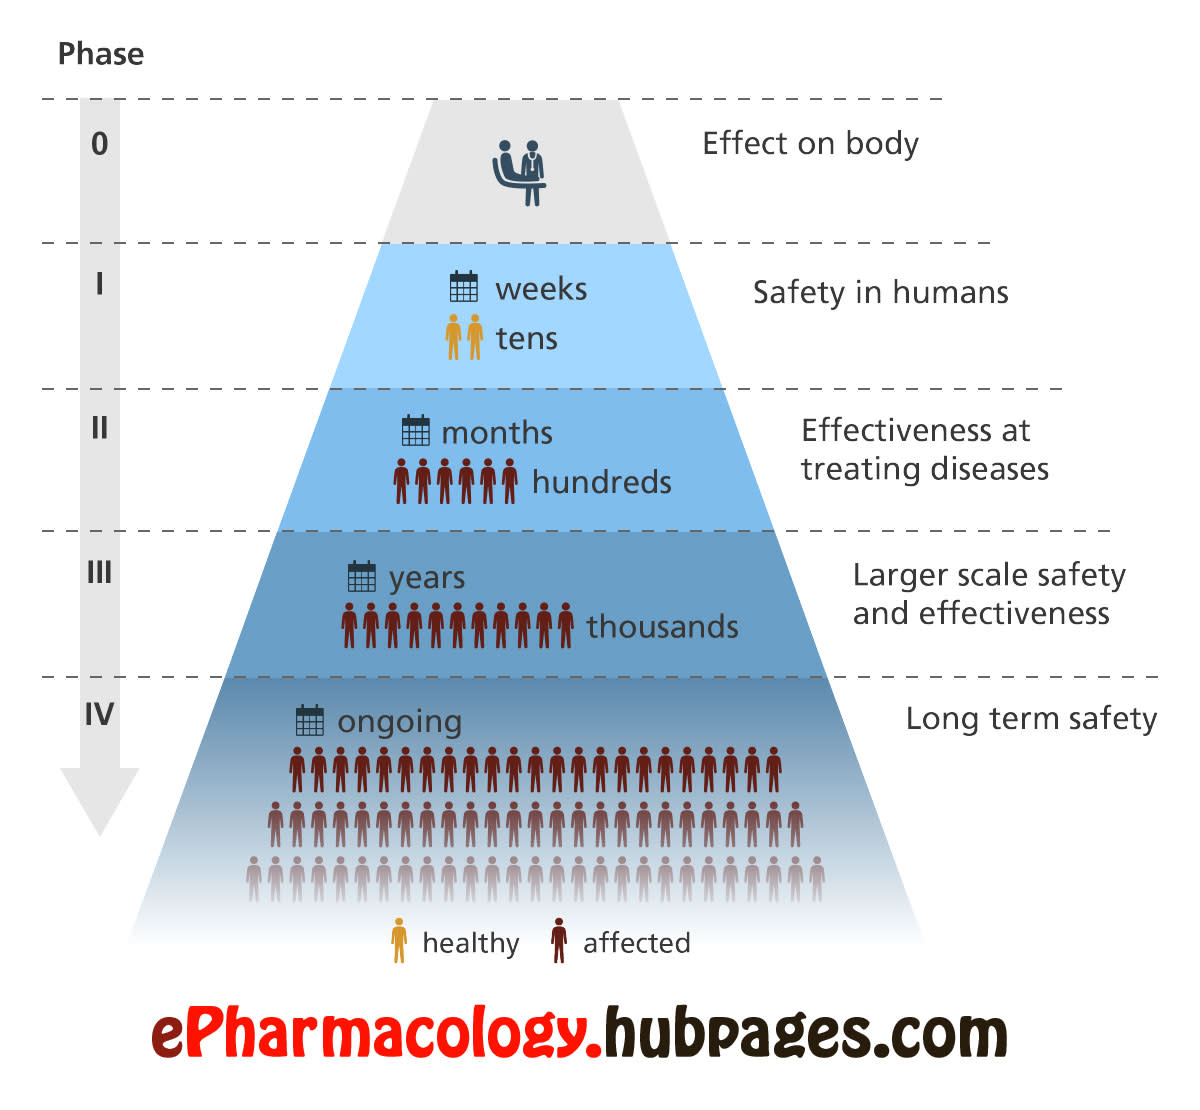 Flowchart showing different clinical phases of drug development